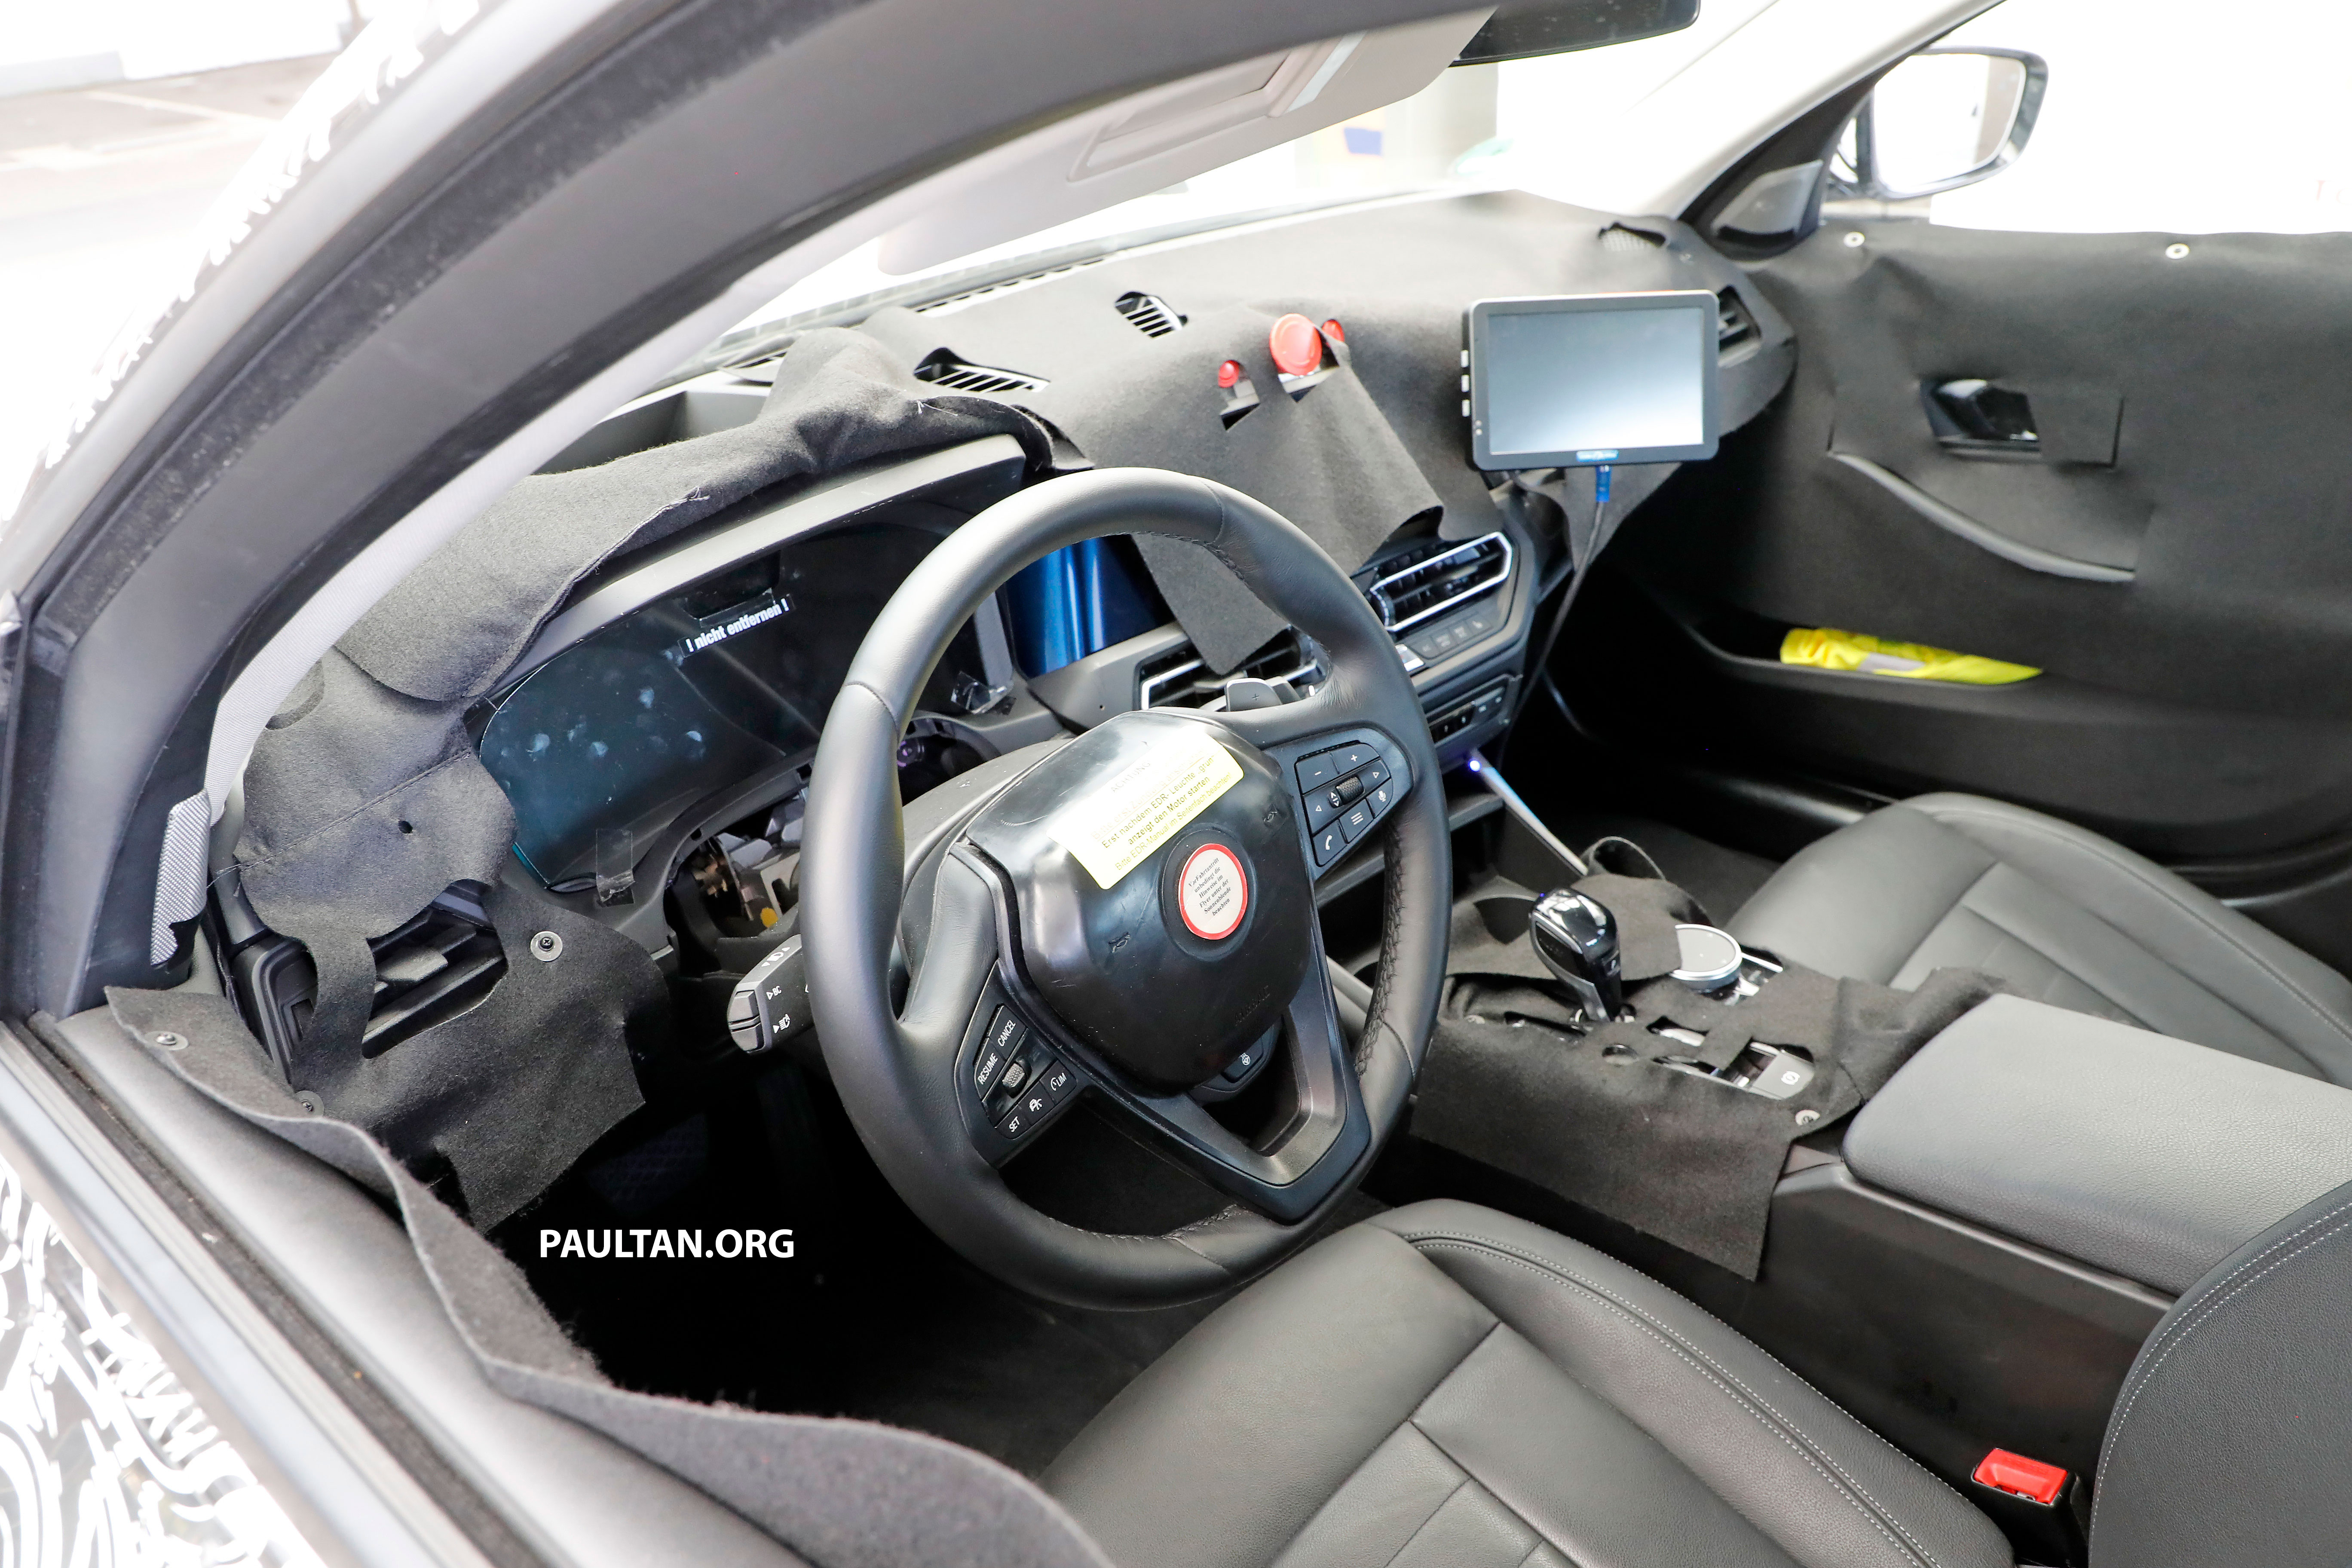 Spied G20 Bmw 3 Series Seen Again With Interior Paul Tan Image